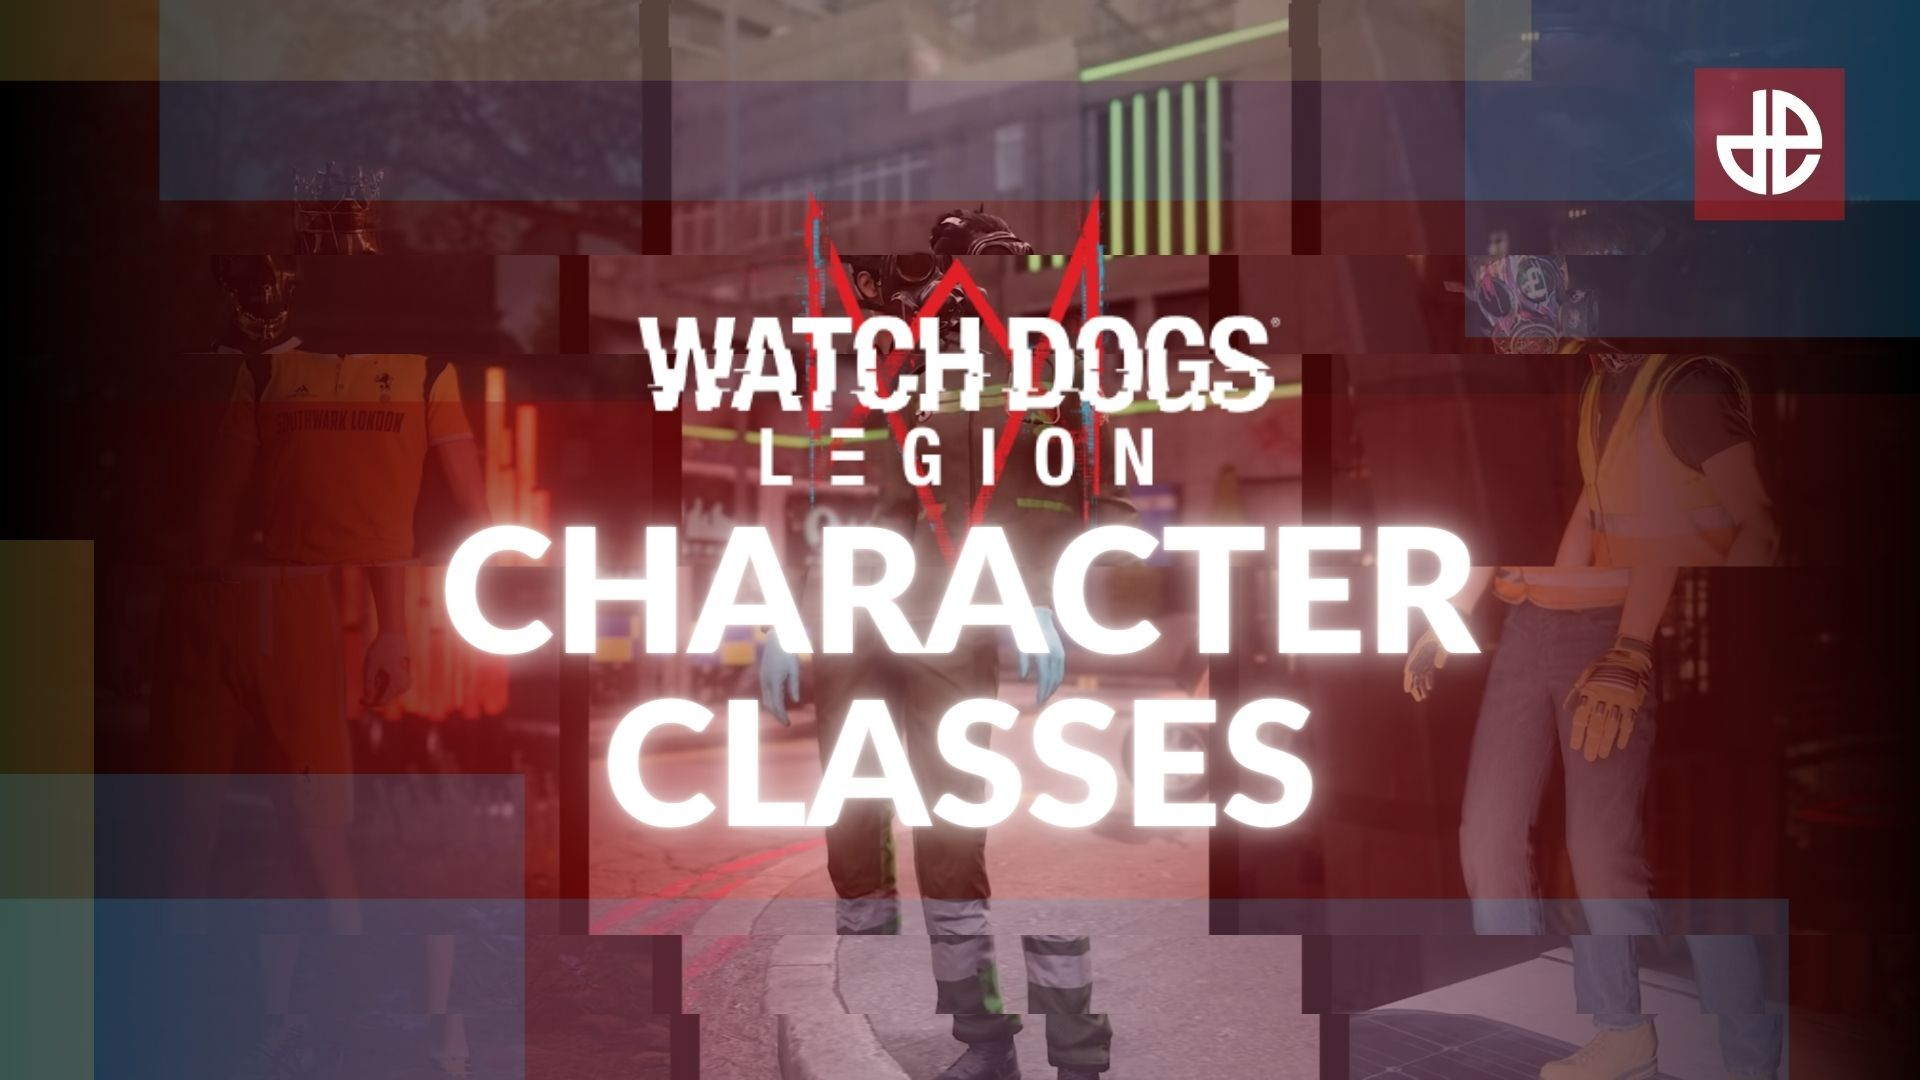 Watch Dogs Legion Character Classes Image